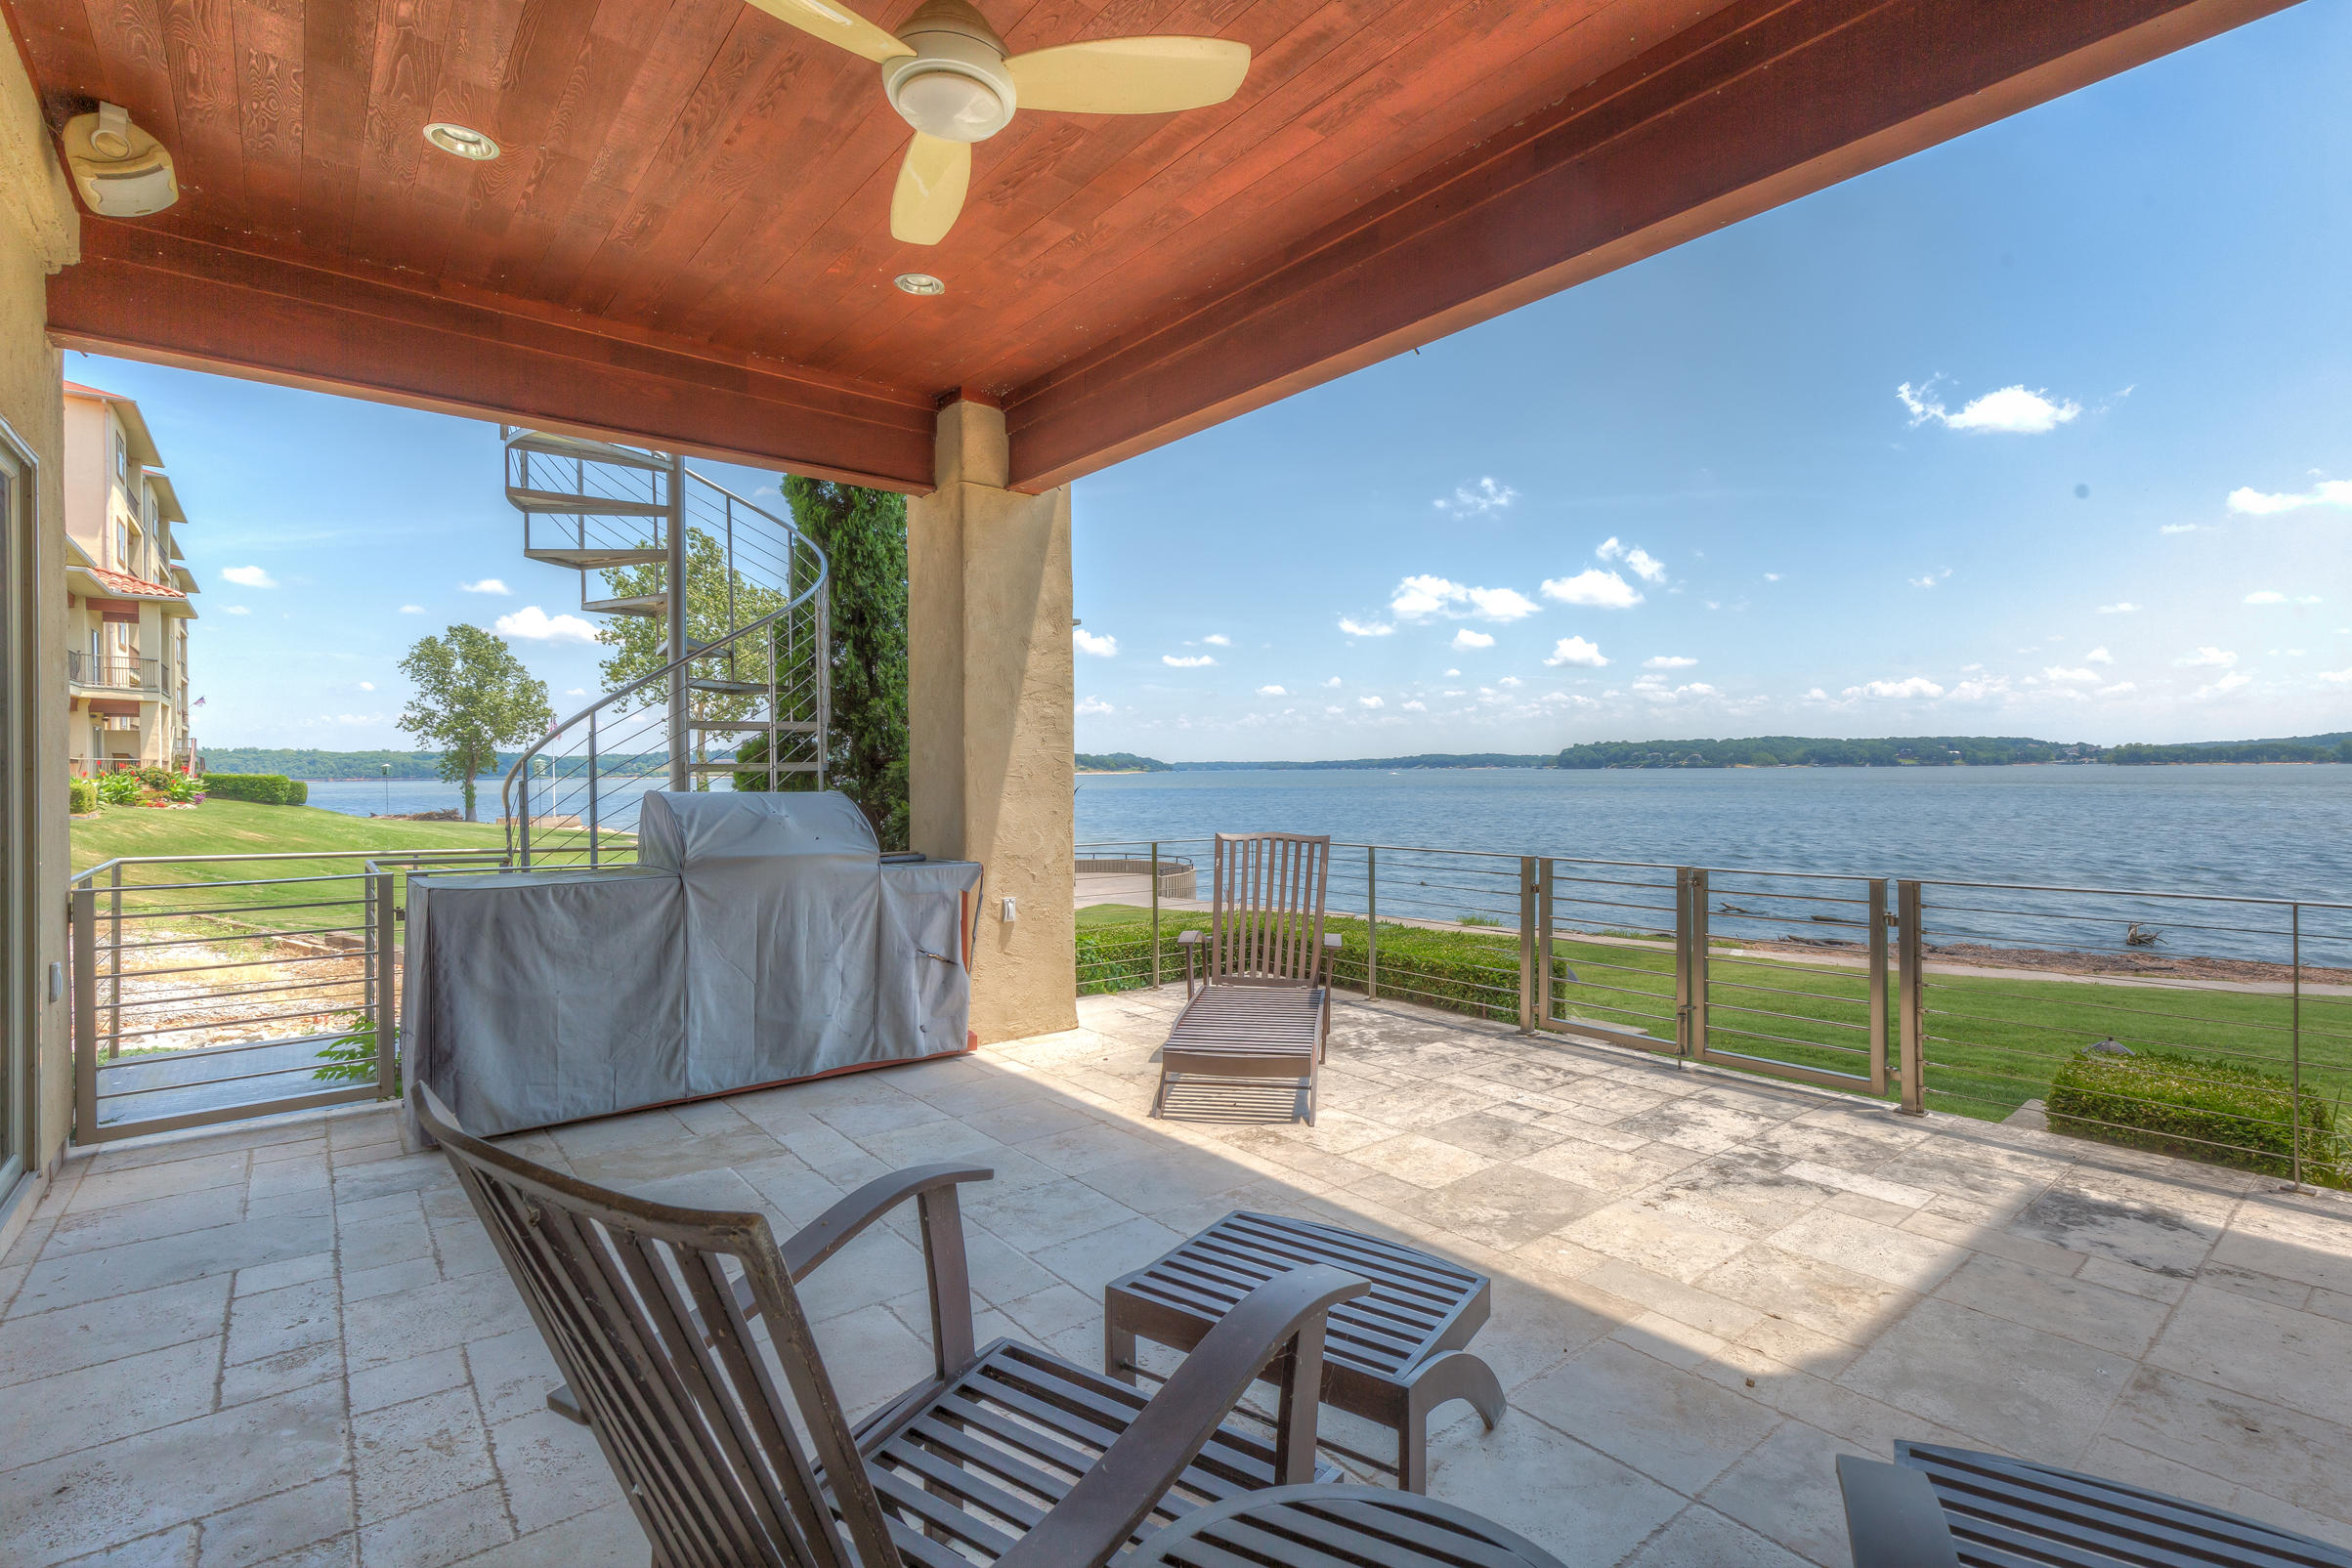 Lakeside Covered Patio